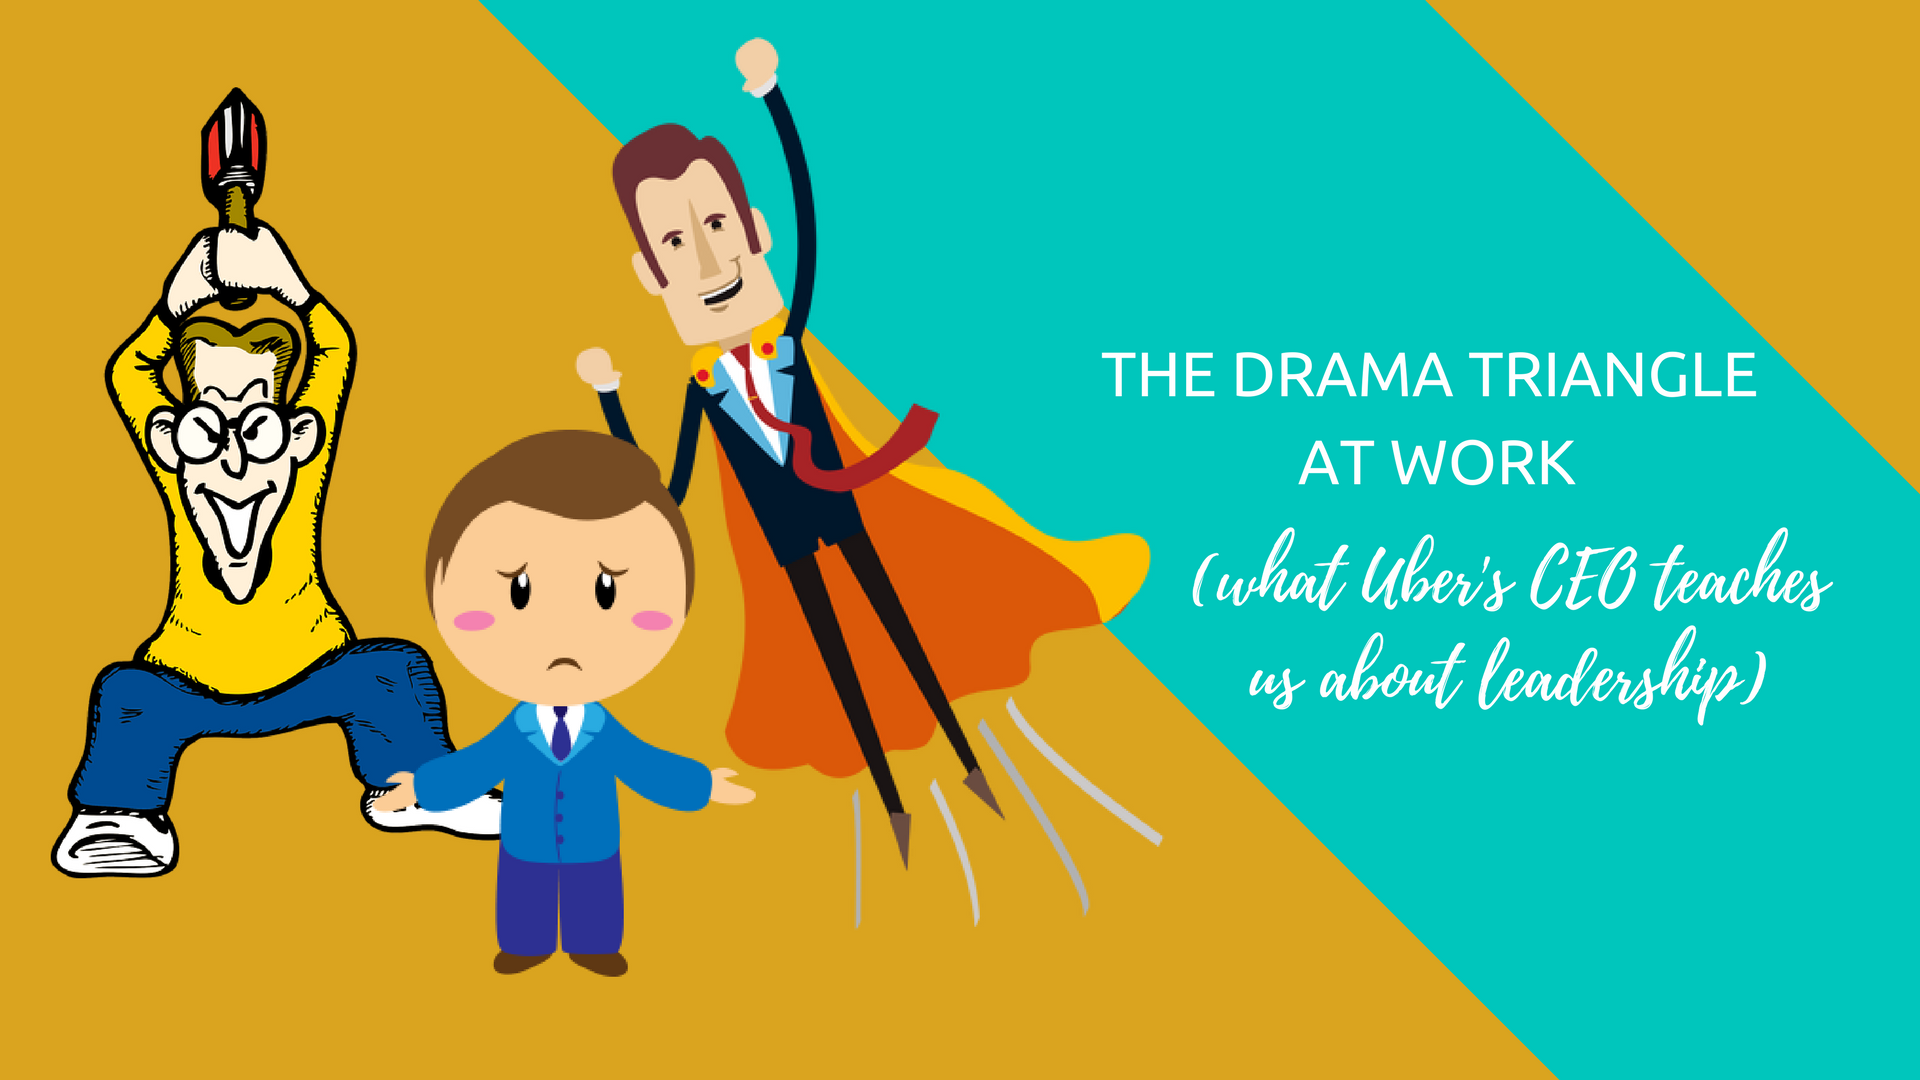 The Drama Triangle at work. What Ubers CEO teaches us about leadership.